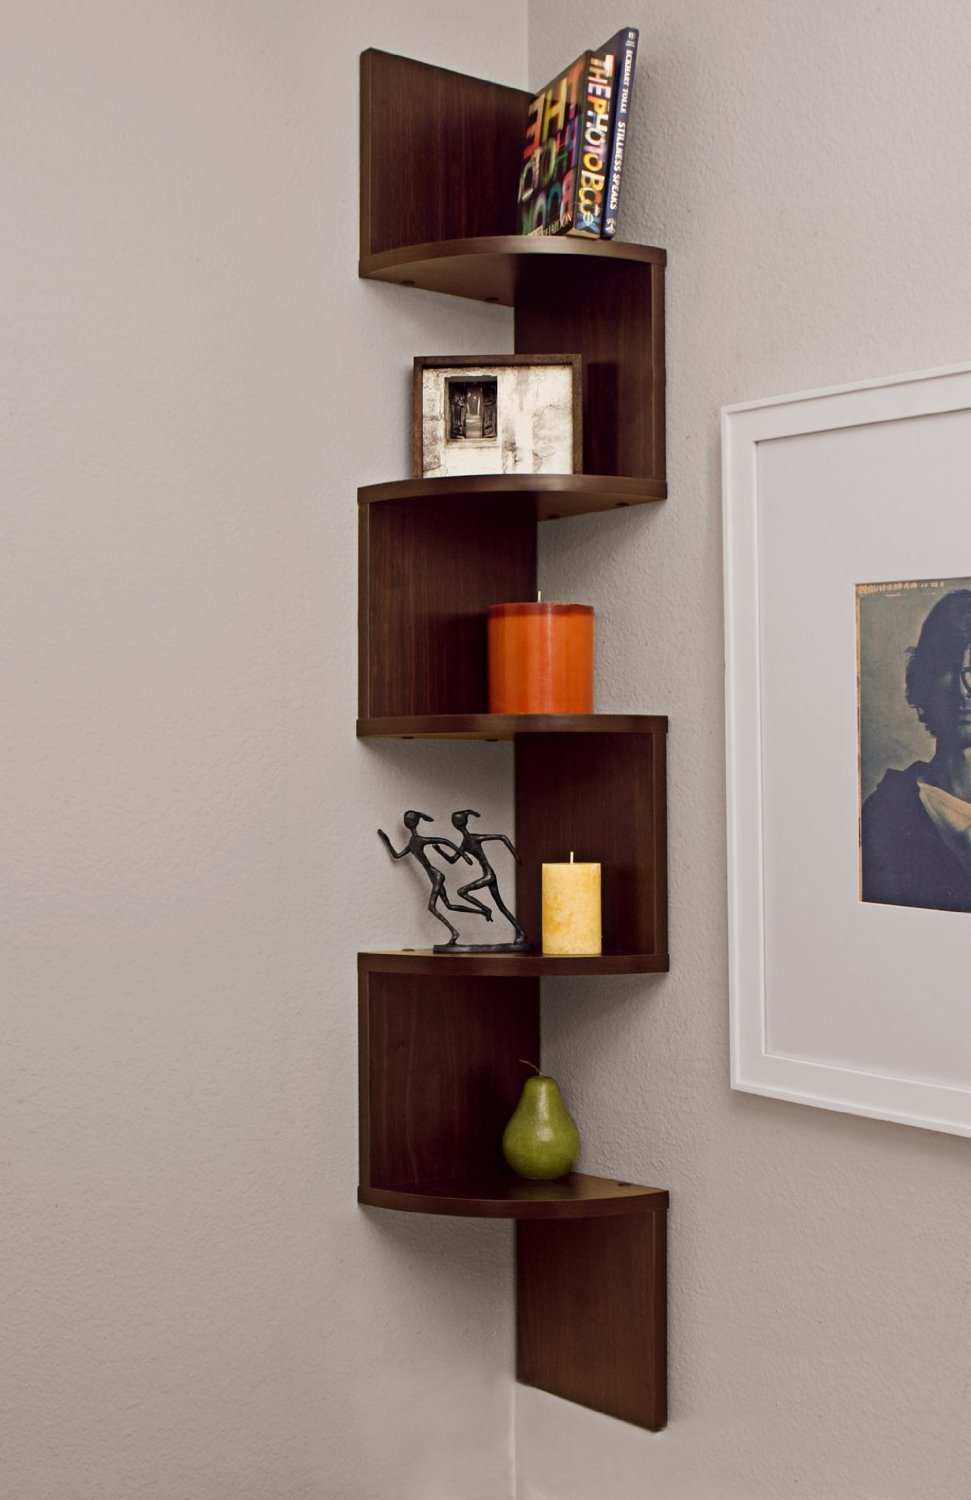 7 Main Types Of Corner Shelves Used For Decor And Storage